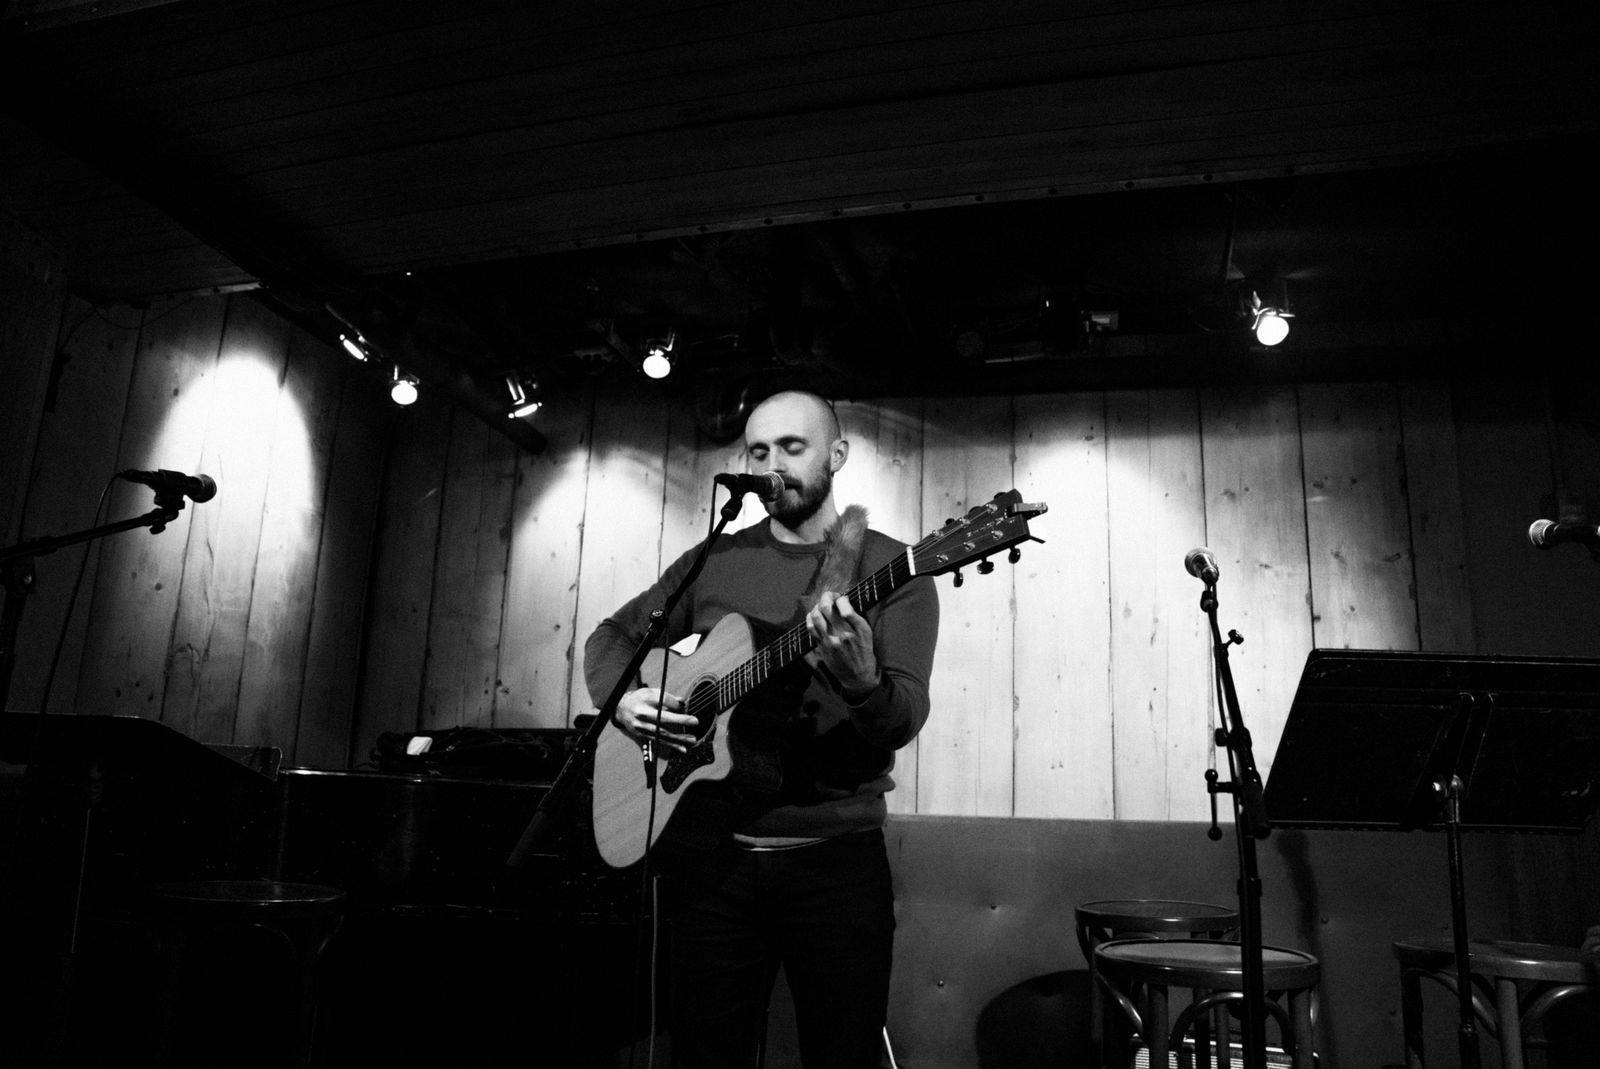 "Joe Holt is a folk singer/songwriter who graduated from Berklee College of Music in 2015.  Joe has released three EPs and two full length albums. He has toured around America four times, playing venues like Club Passim (Boston), the Hard Rock Cafe (Boston), Rockwood Music Hall (NYC), The Bitter End (NYC), the Bluebird Cafe (Nashville), the Whisky A Go Go (Los Angeles), and has received airplay on over 60 radio stations internationally. Joe's second full length album ""The Person I Admire"" charted on three radio stations, notably #3 in Redway, CA. He has been named Artist of the Week at WERU (Bangor, ME) twice. The song ""As Bad As It Seems,"" from Joe's EP ""Something Louder,"" was featured on NPR's All Songs Considered blog in March 2018.  Indie Minded praised Joe as ""a gifted young talent who is sure to leave his mark on the folk music scene."" Other credits include opening for nationally touring acts including Parker Millsap, Davina and the Vagabonds, and Ian Fitzgerald, scoring the short film The Race, and driving 13,000 miles in three weeks.  Joe lives in New York City. Find his music on iTunes, Spotify, and Amazon.   https://joeholtmusic.com/"